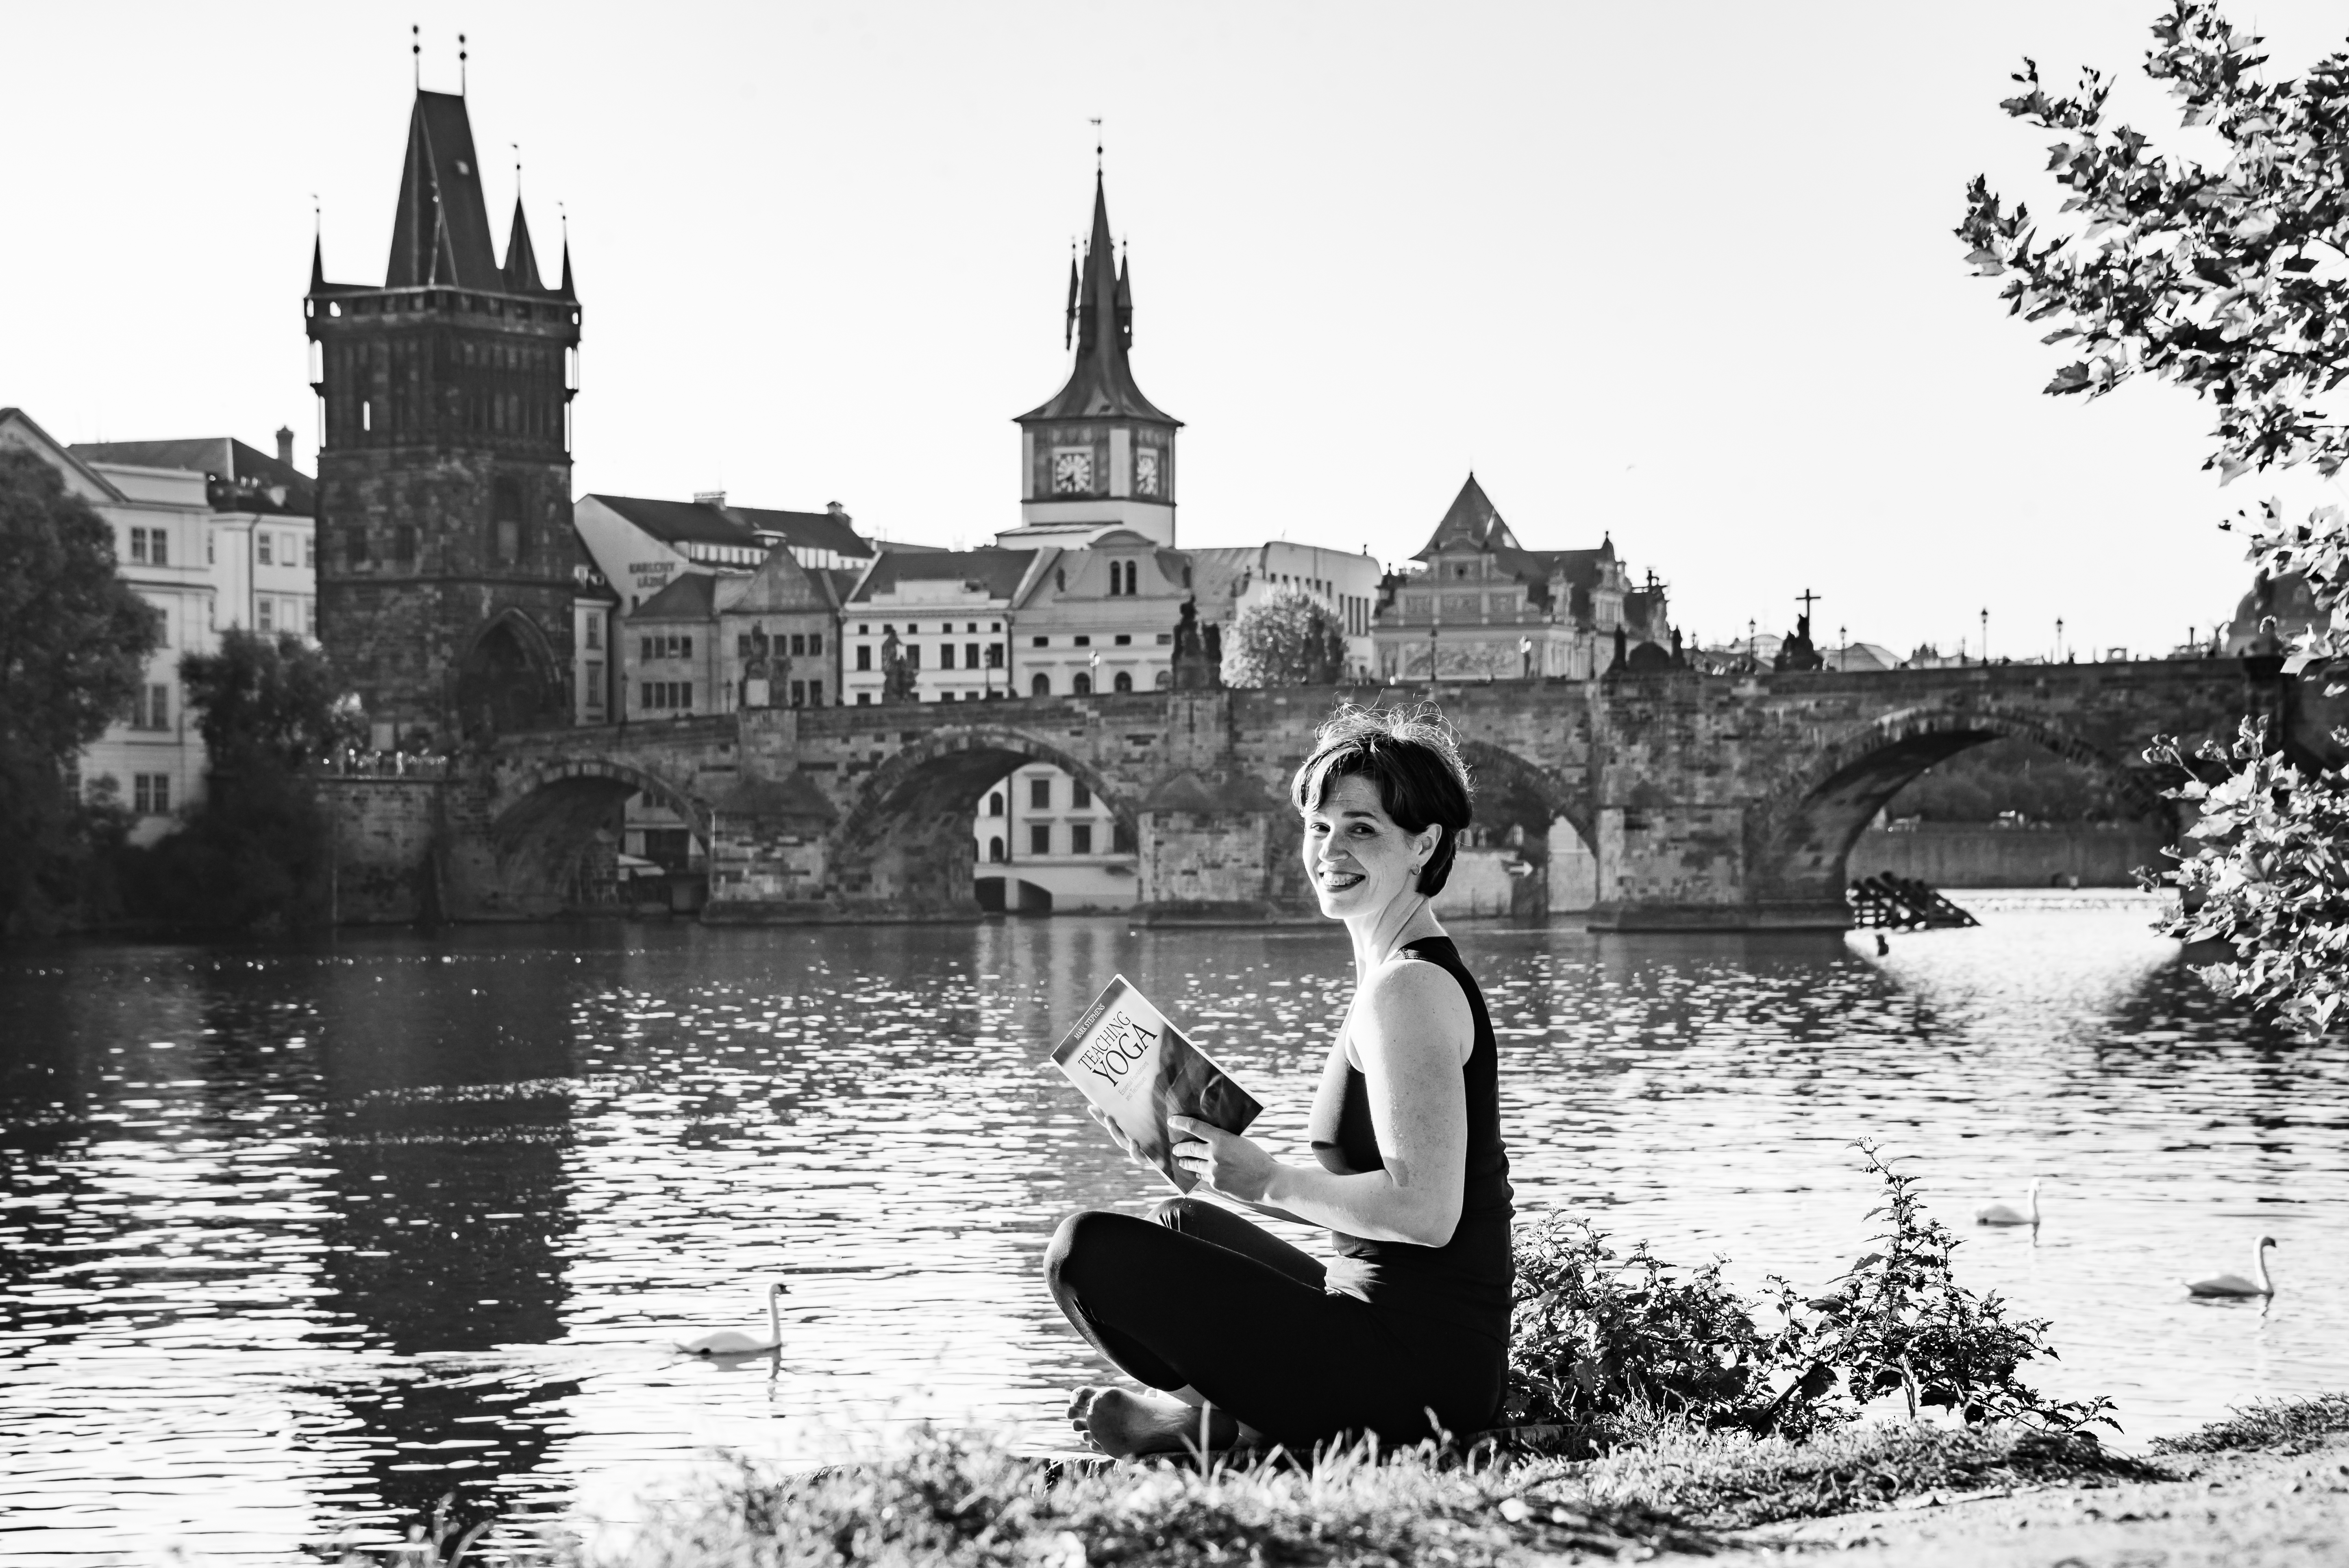 a woman sitting at the river, reading a book